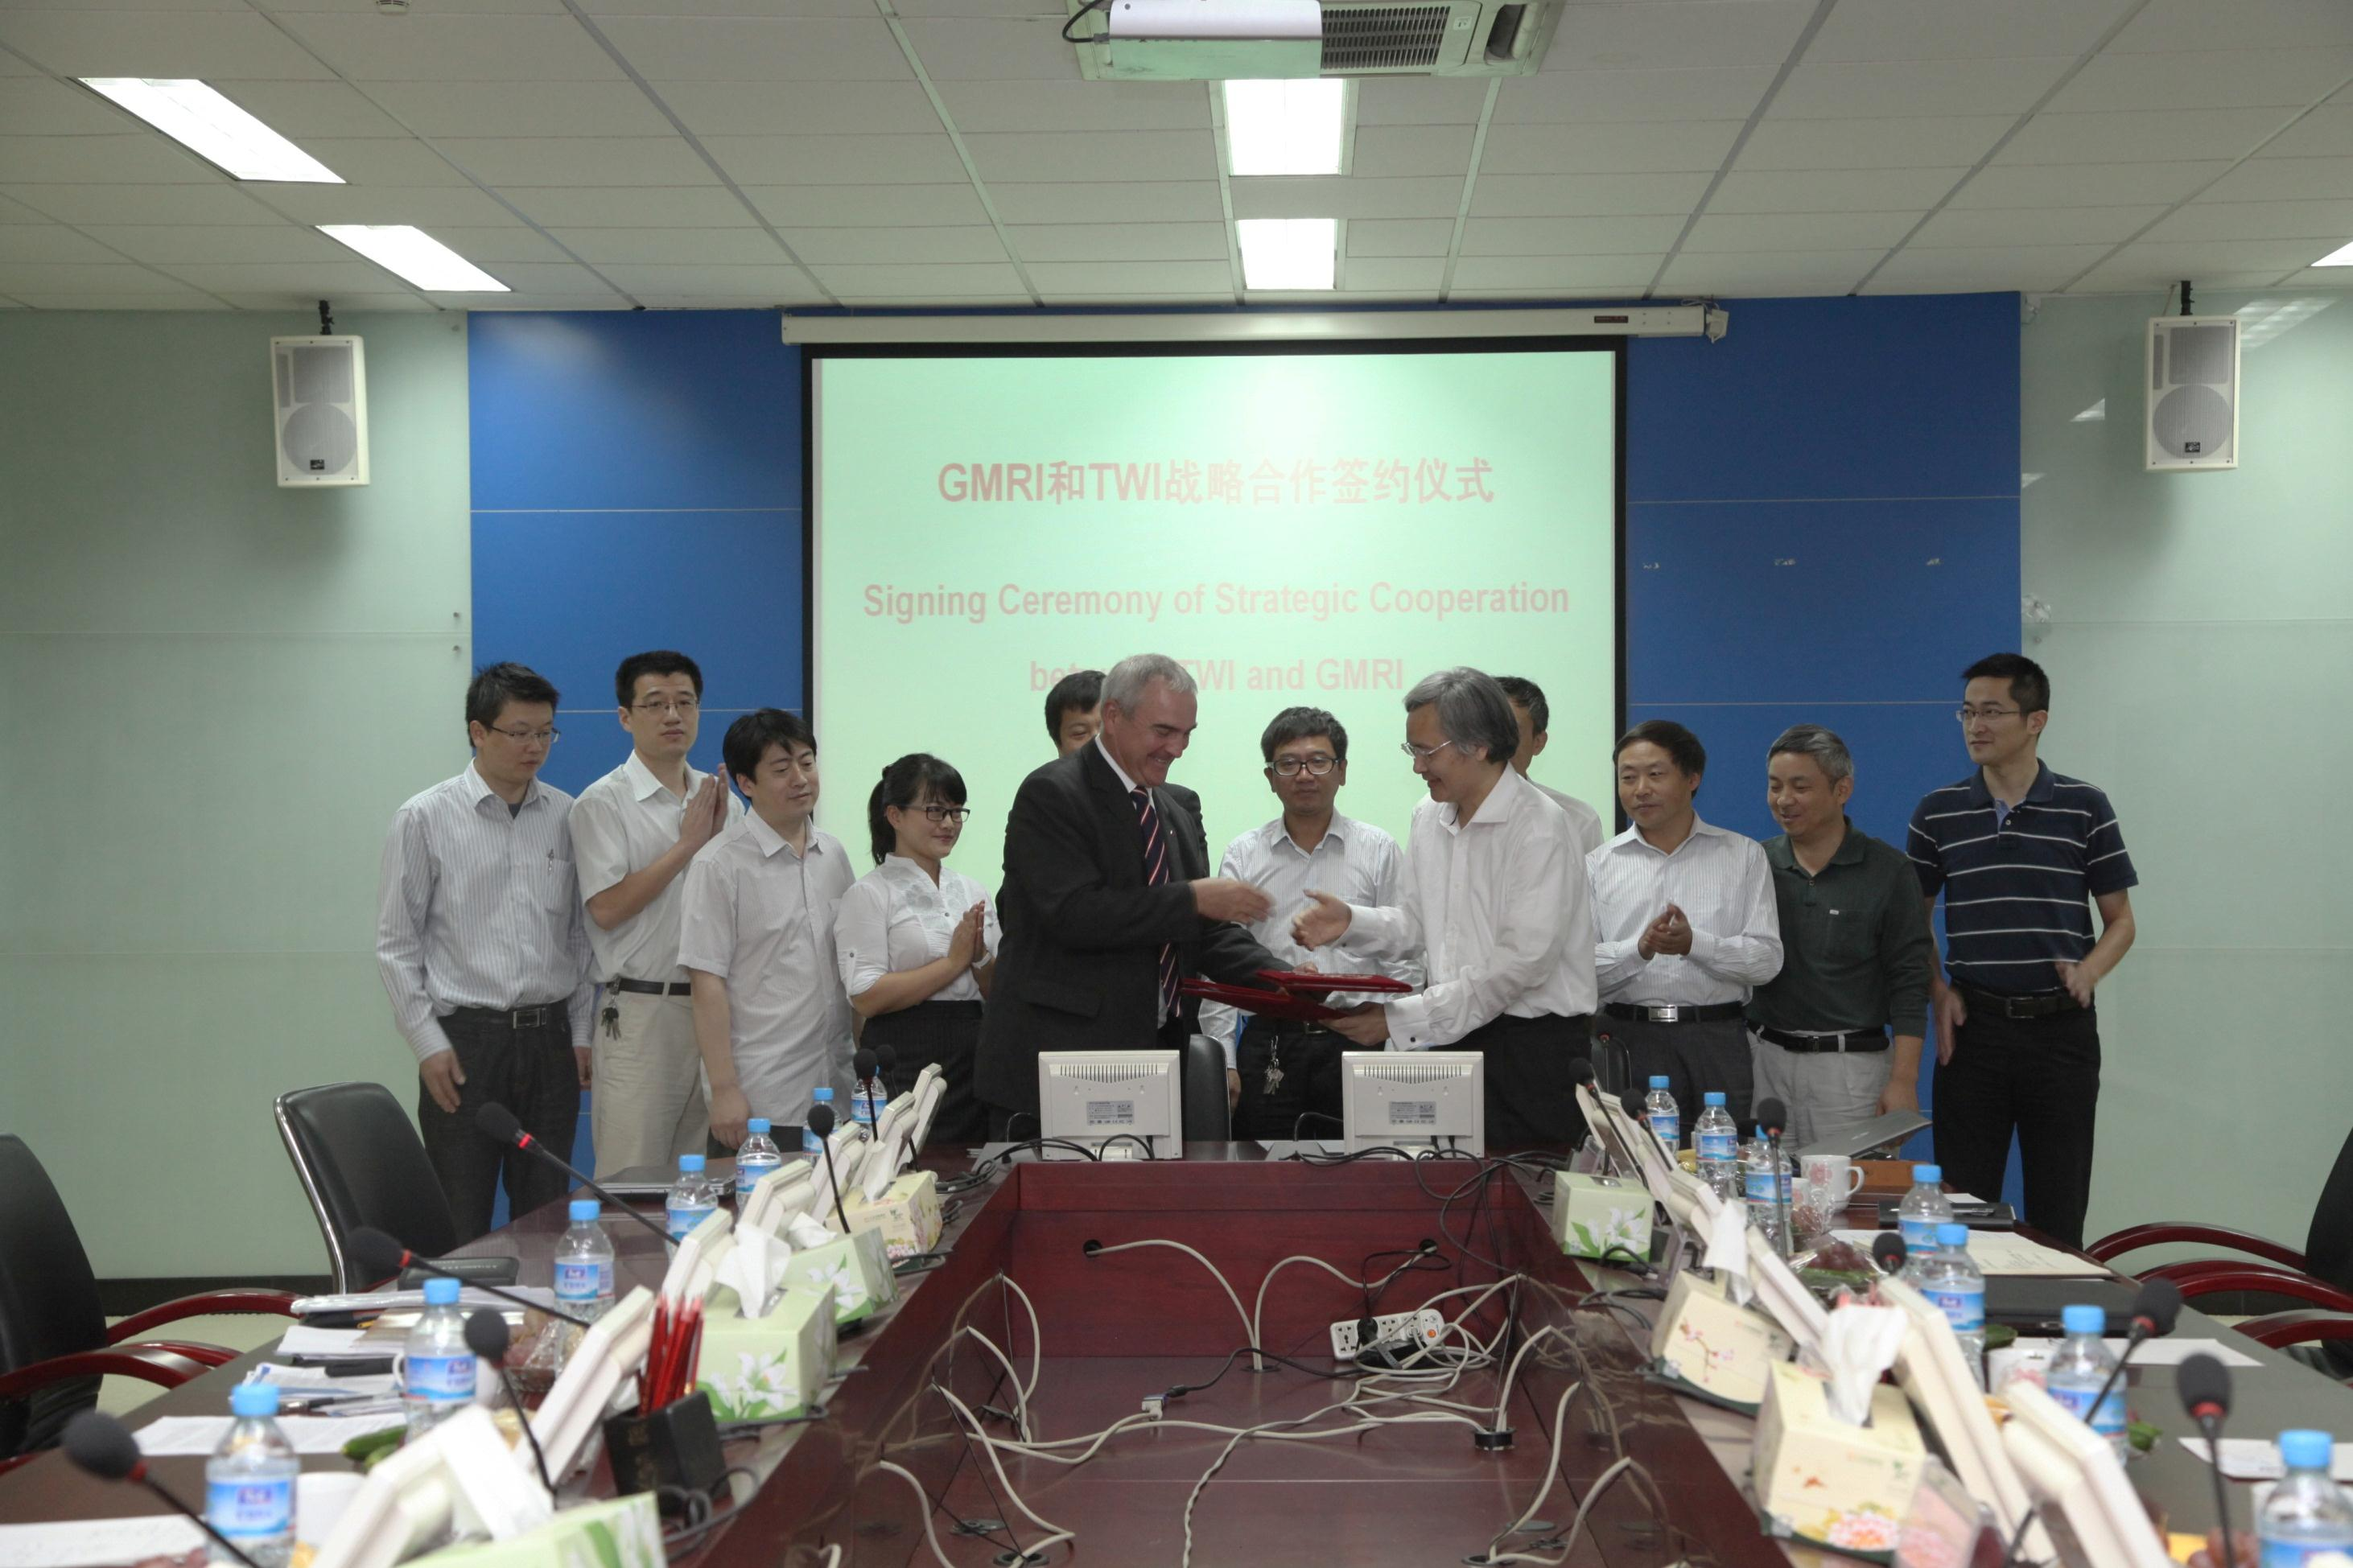 TWI CEO Dr Christoph Wiesner signs the contract with Prof Xuedong Chen (President of GMRI) at GMRI in October, 2012